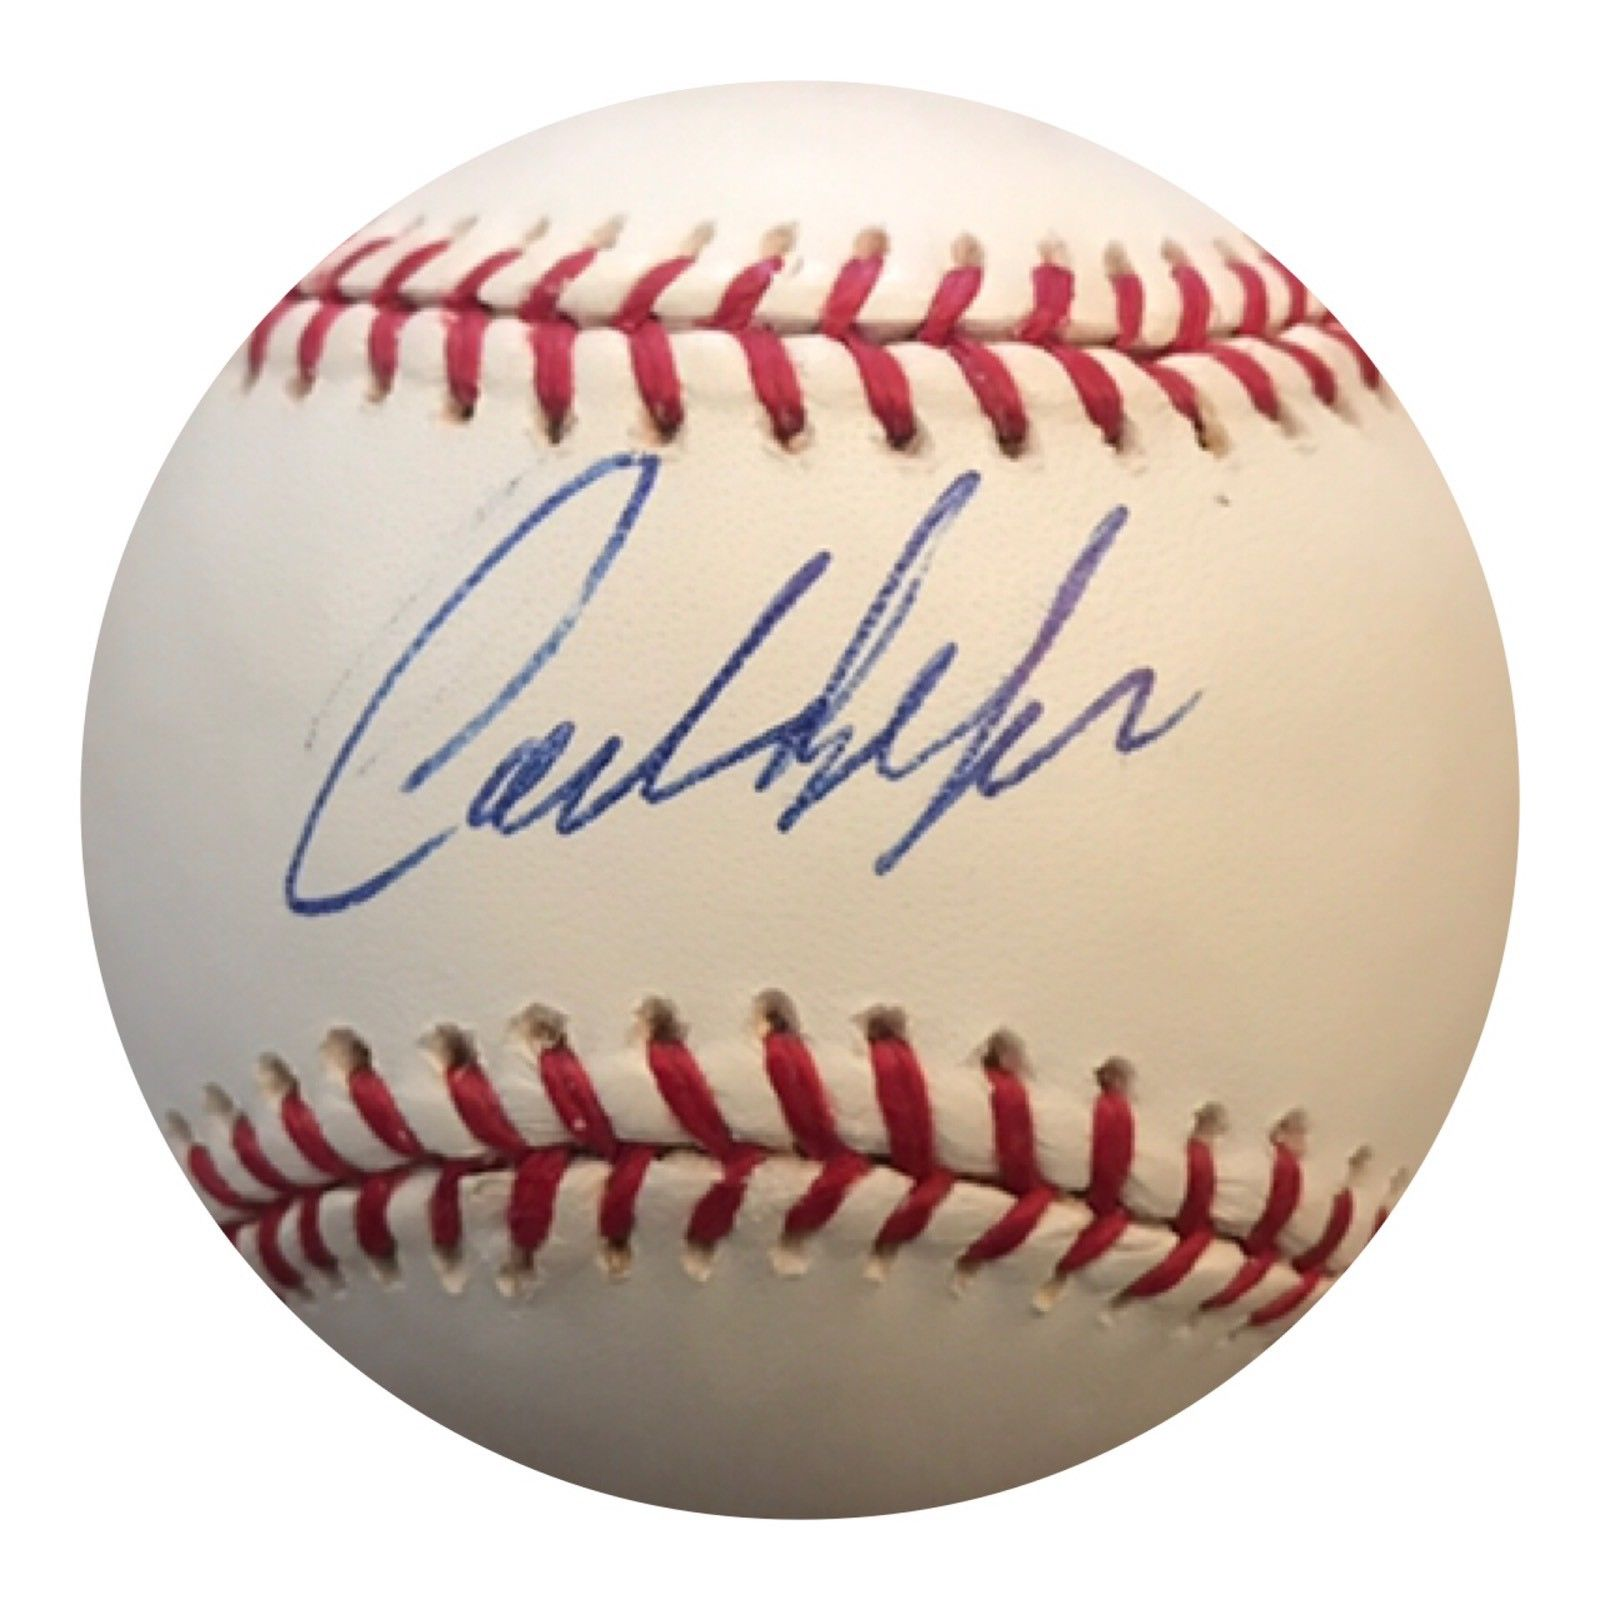 Carlos Delgado Authentic Signed MLB Baseball - TORONTO BLUE JAYS ALL STAR - Top Notch Signatures LLC